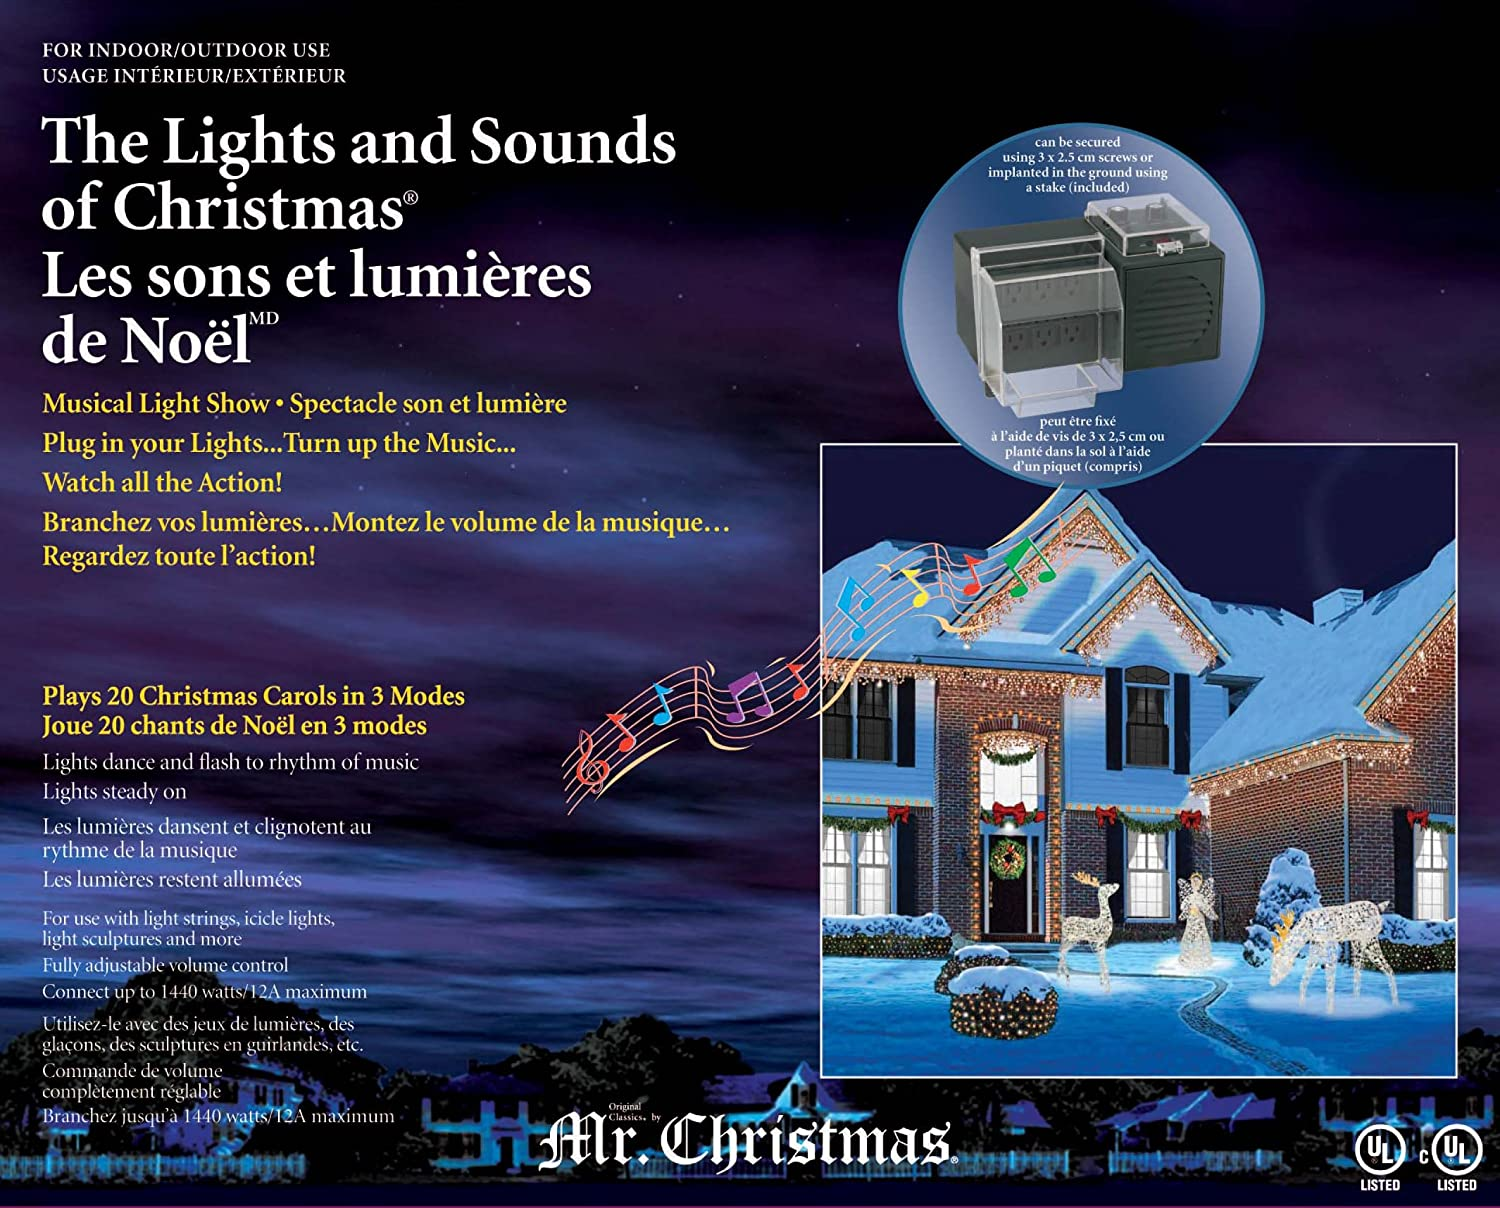 amazoncom outdoor lights and sounds of christmas home kitchen